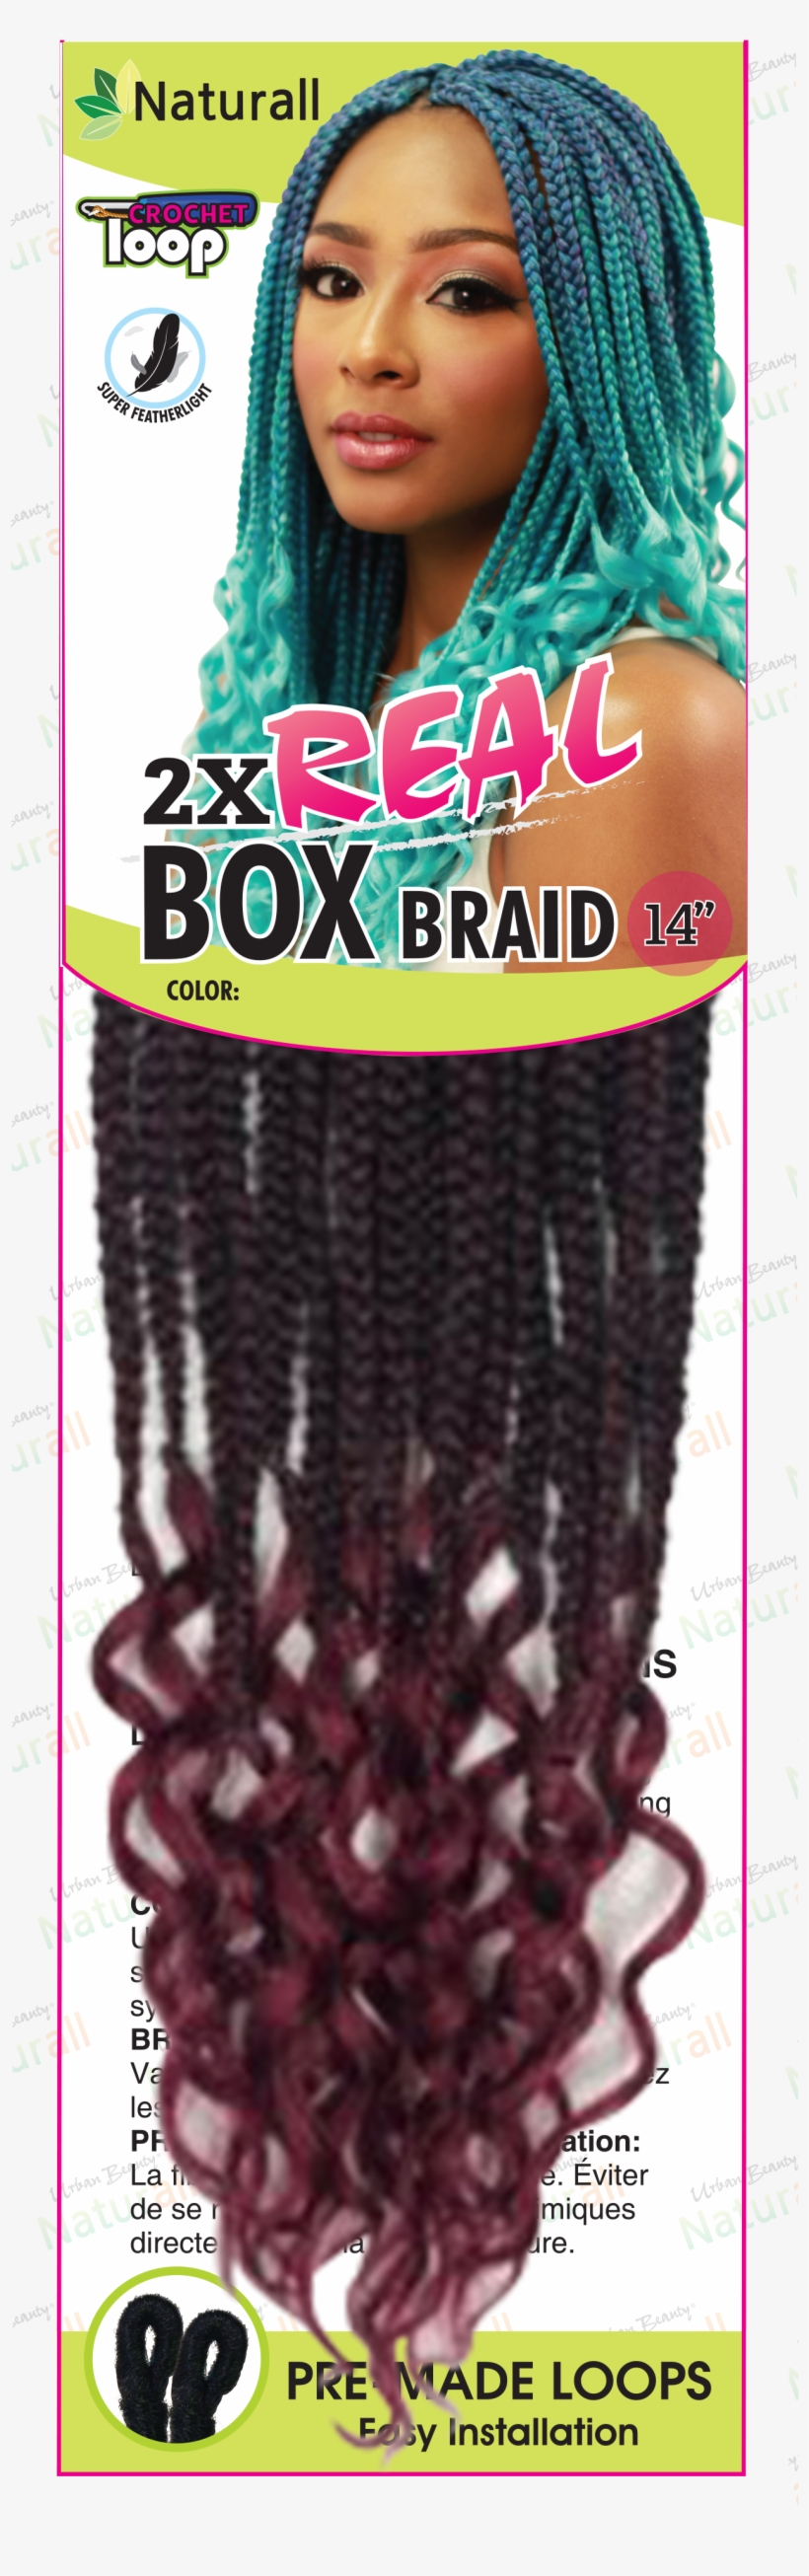 Urban Beauty 2x Real Box Braid Curl 14